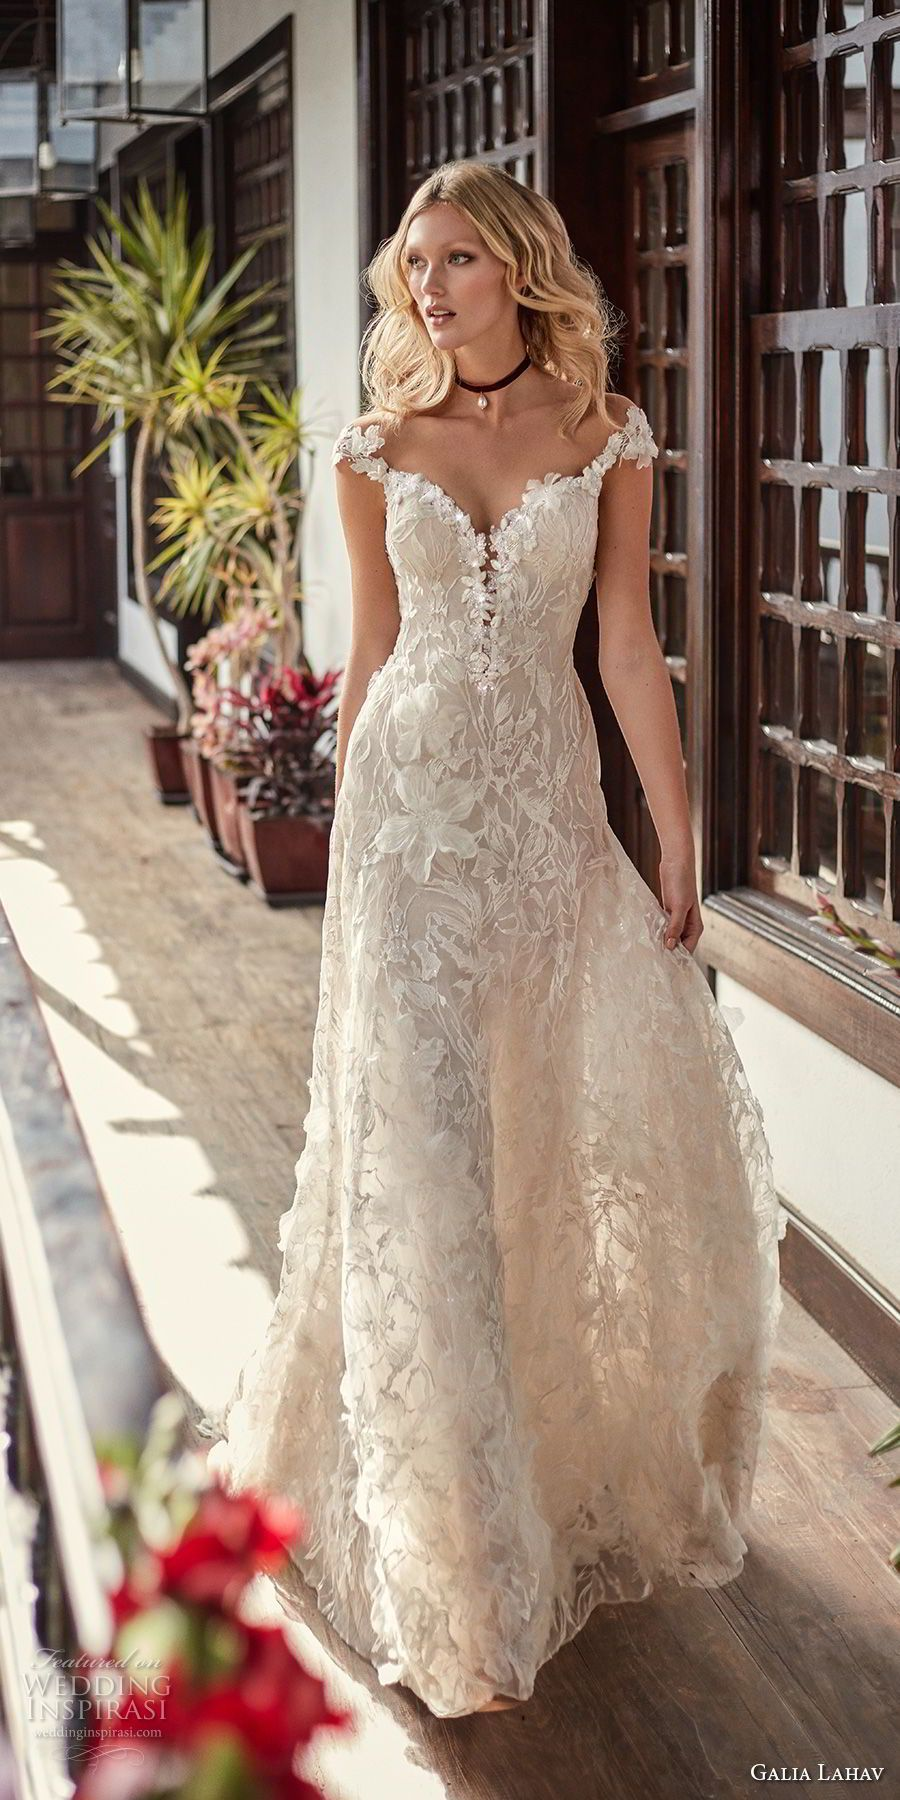 Lace cap sleeve a line wedding dress  galia lahav couture fall  bridal cap sleeves sweetheart neckline